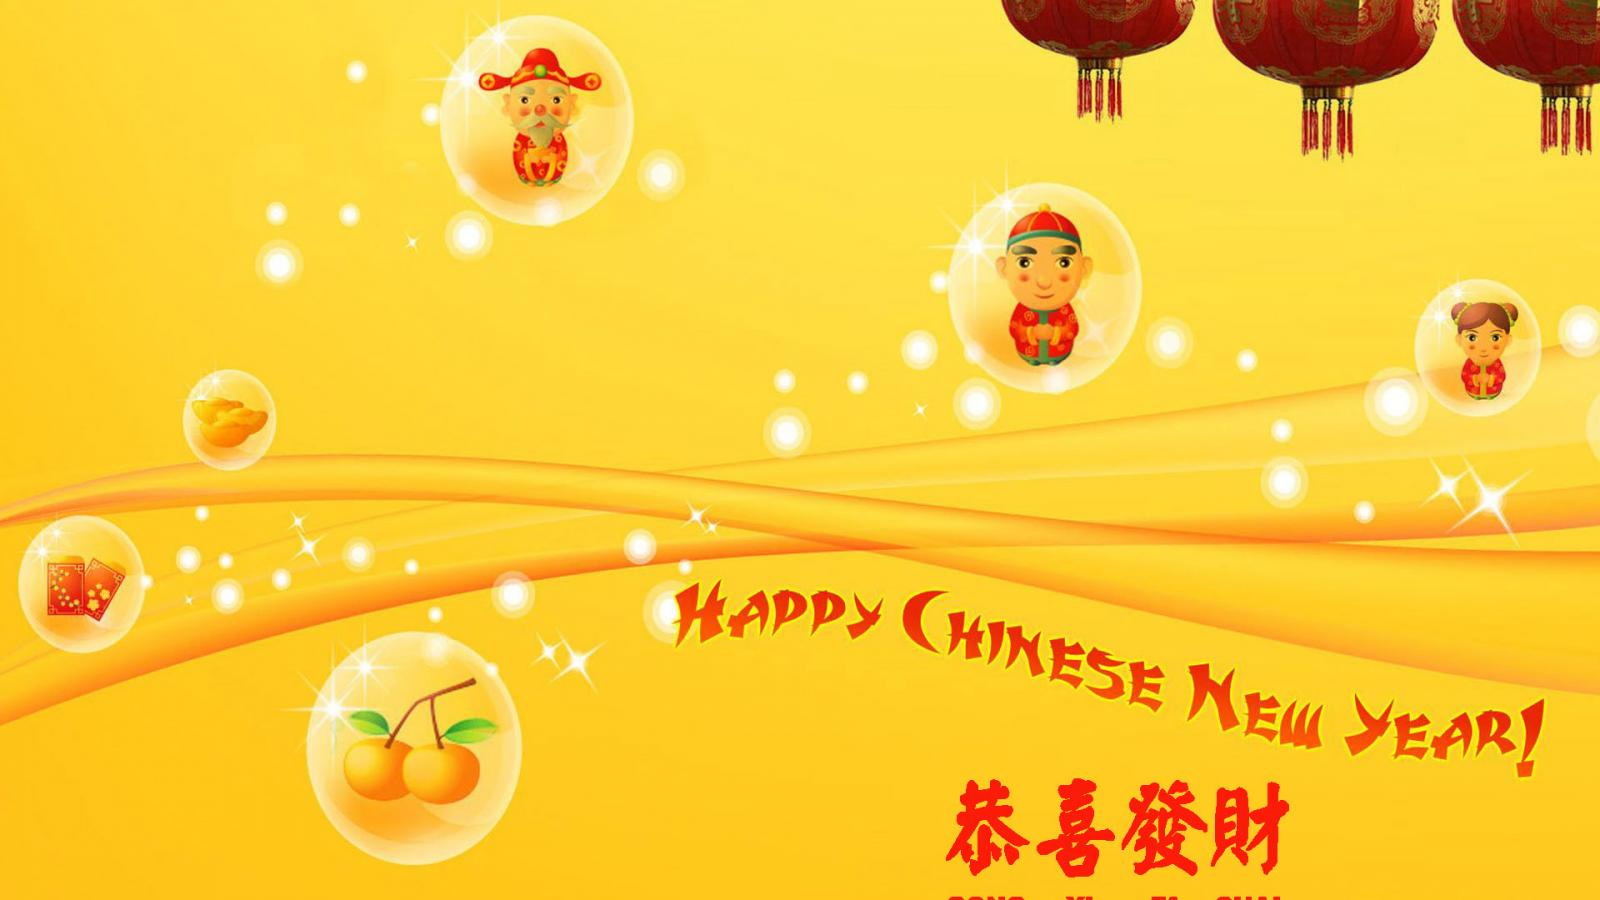 Chinese New Year Greeting Message Wallpaper with Text – Gong Xi Fa ...